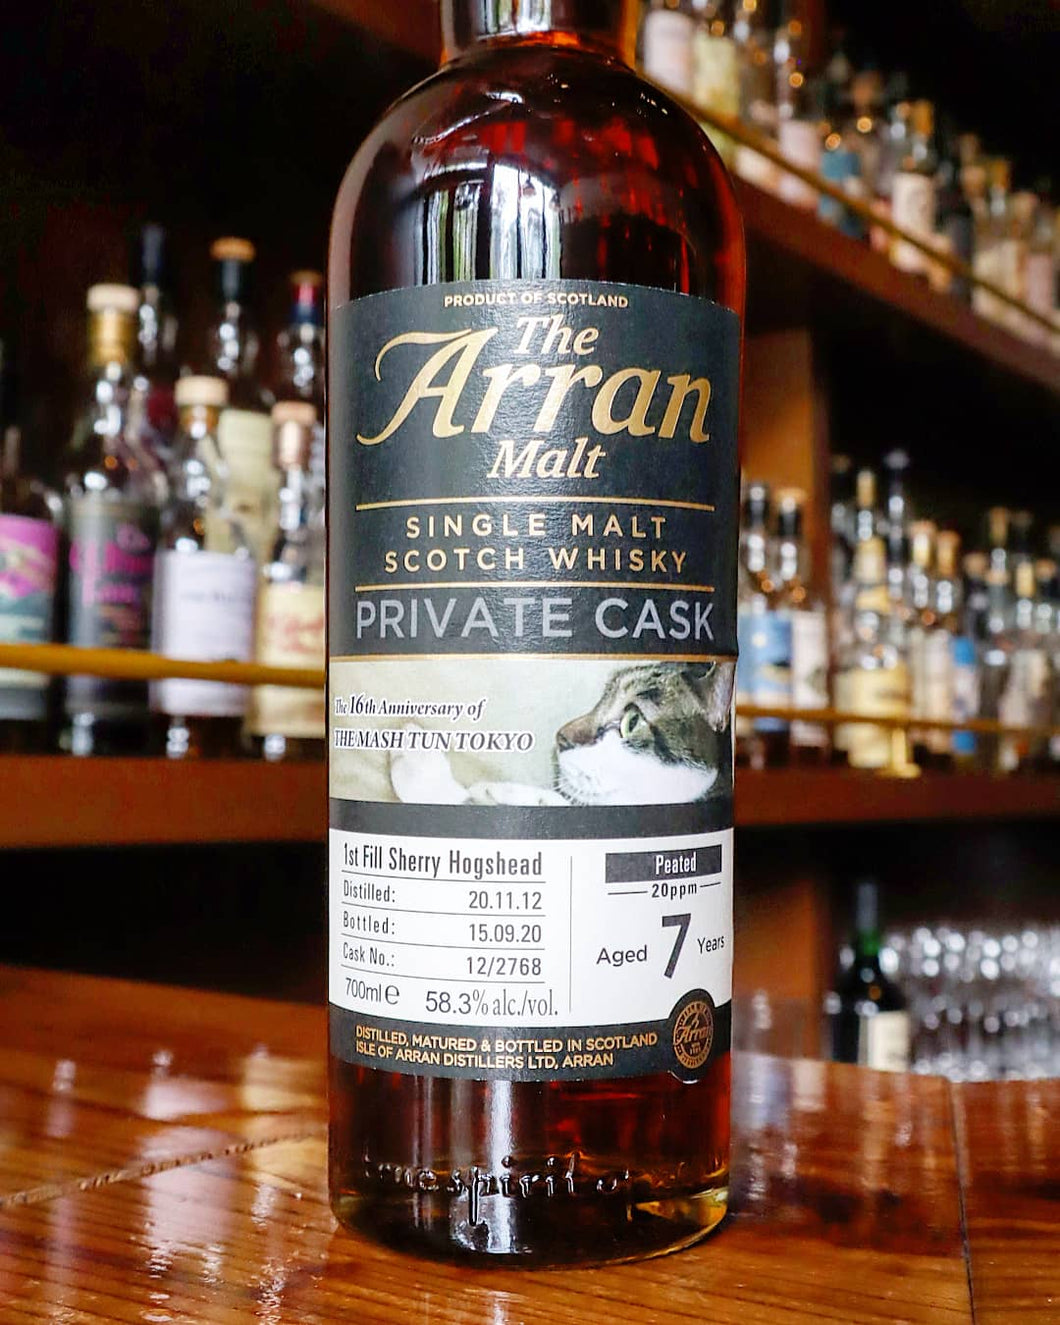 Arran for The Mash Tun 16th Anniversary Peated 20ppm 2012/2020 7yo, 58.3% (BOTTLE)